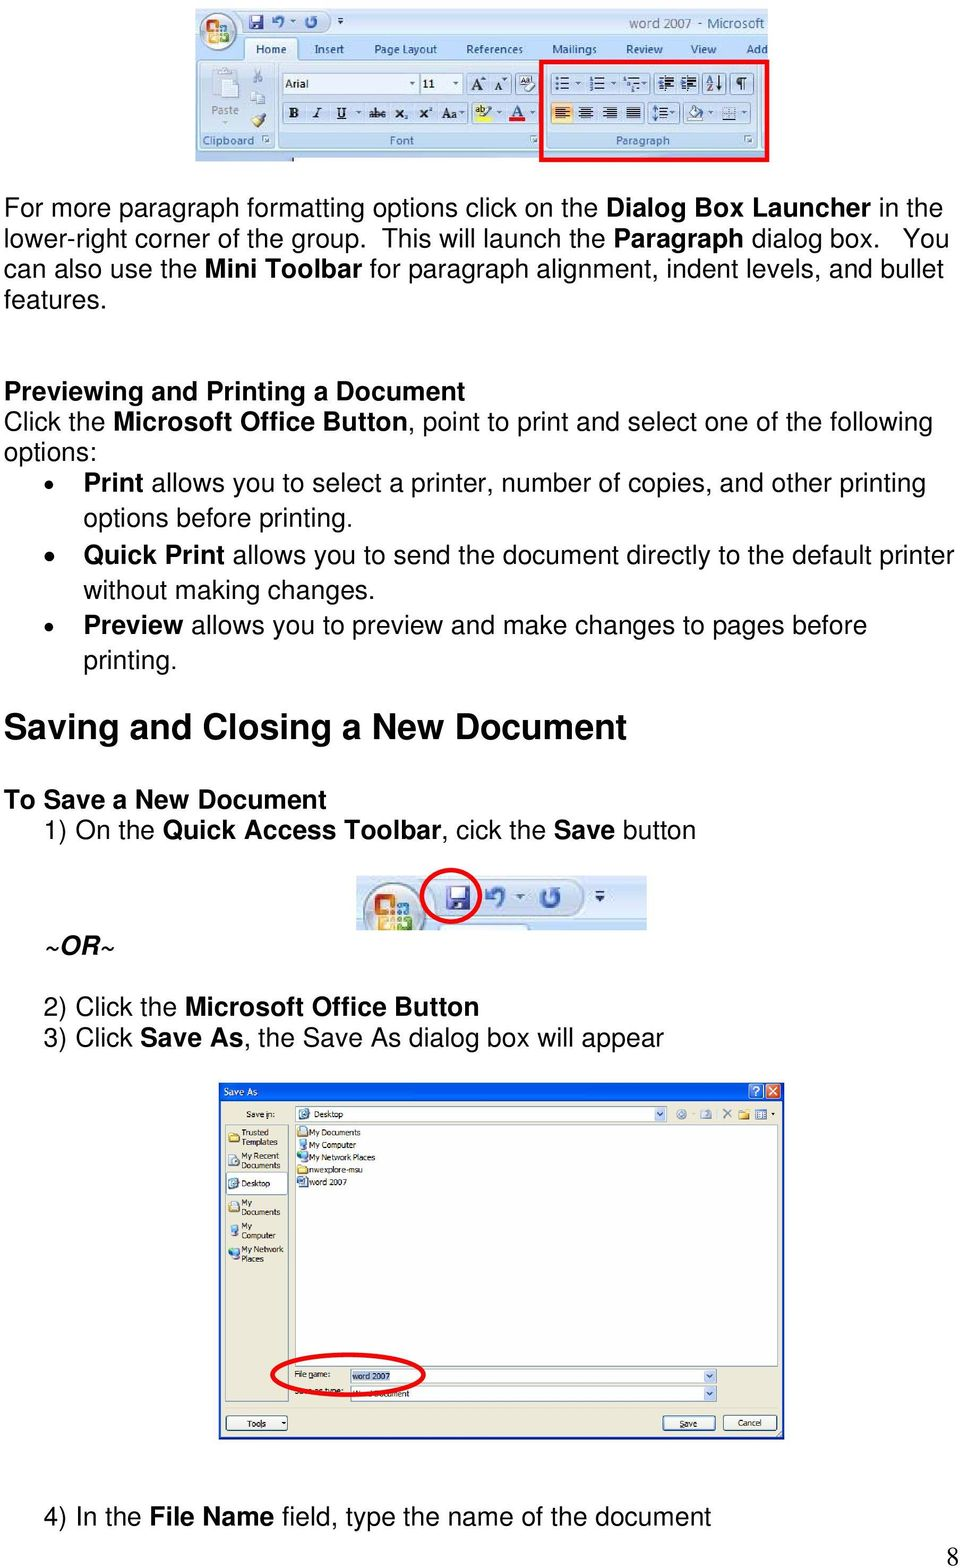 Previewing and Printing a Document Click the Microsoft Office Button, point to print and select one of the following options: Print allows you to select a printer, number of copies, and other